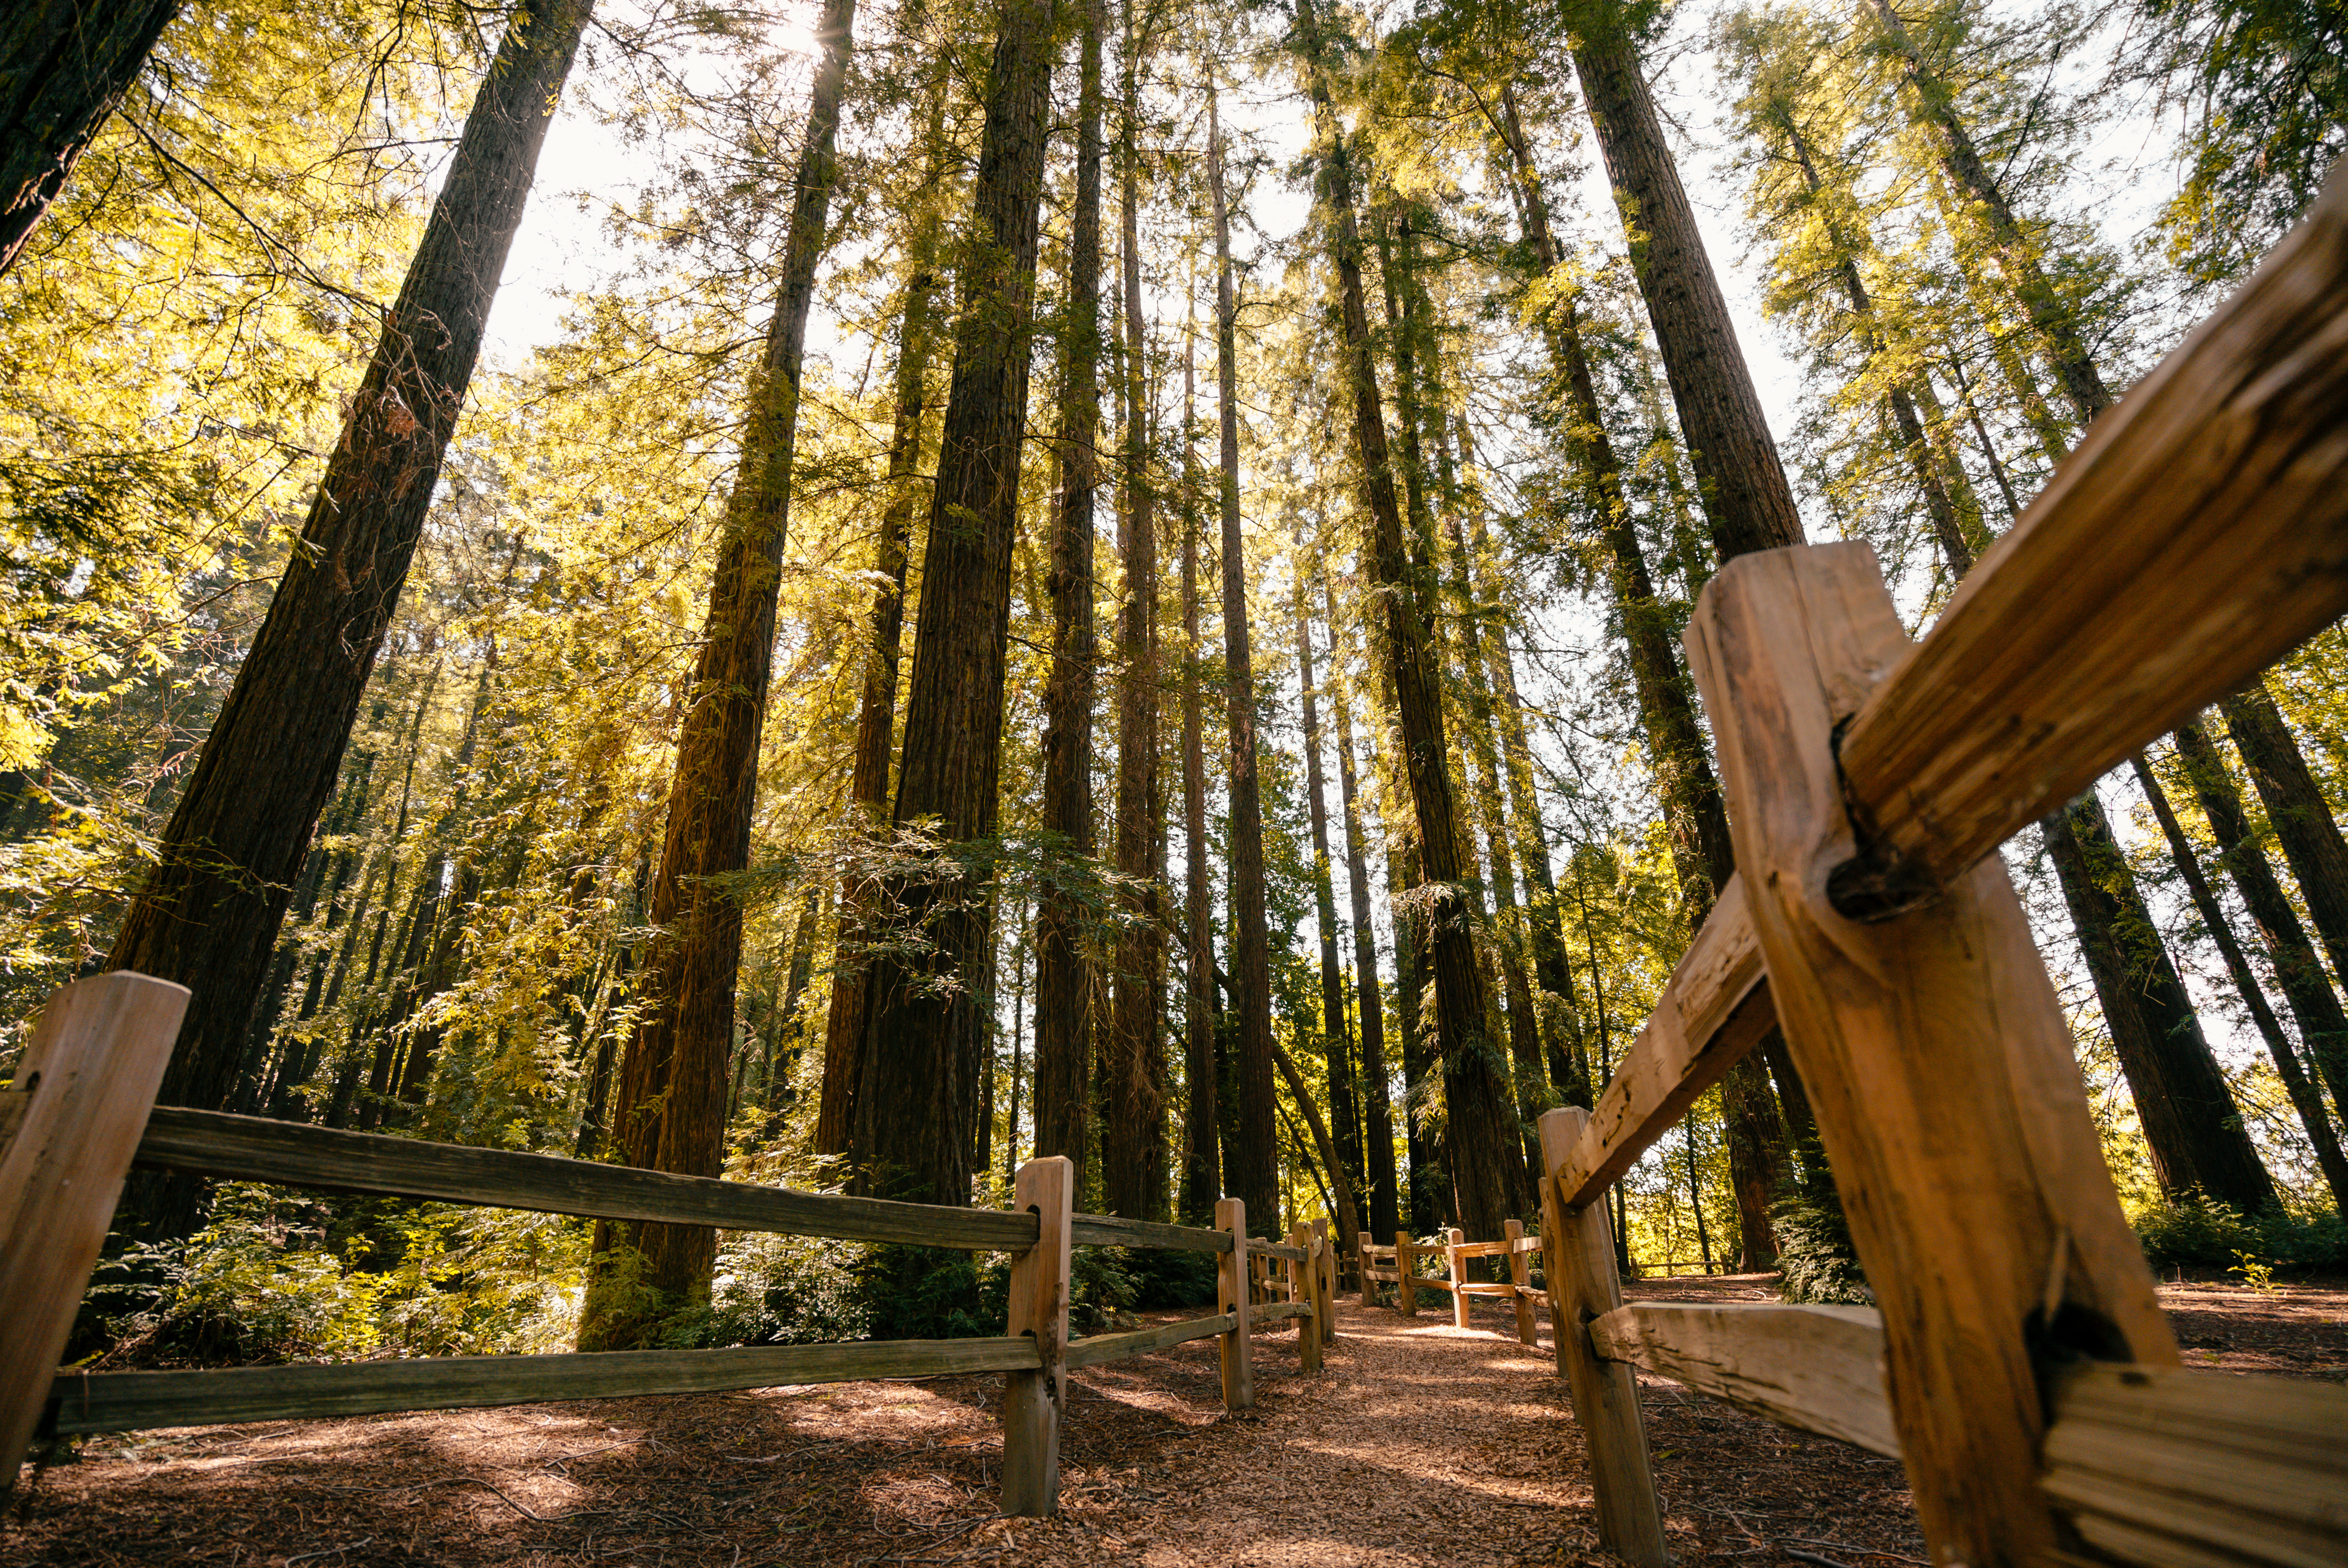 Forest Bathing in the redwoods at Riverfront Regional Park, Sonoma County, California